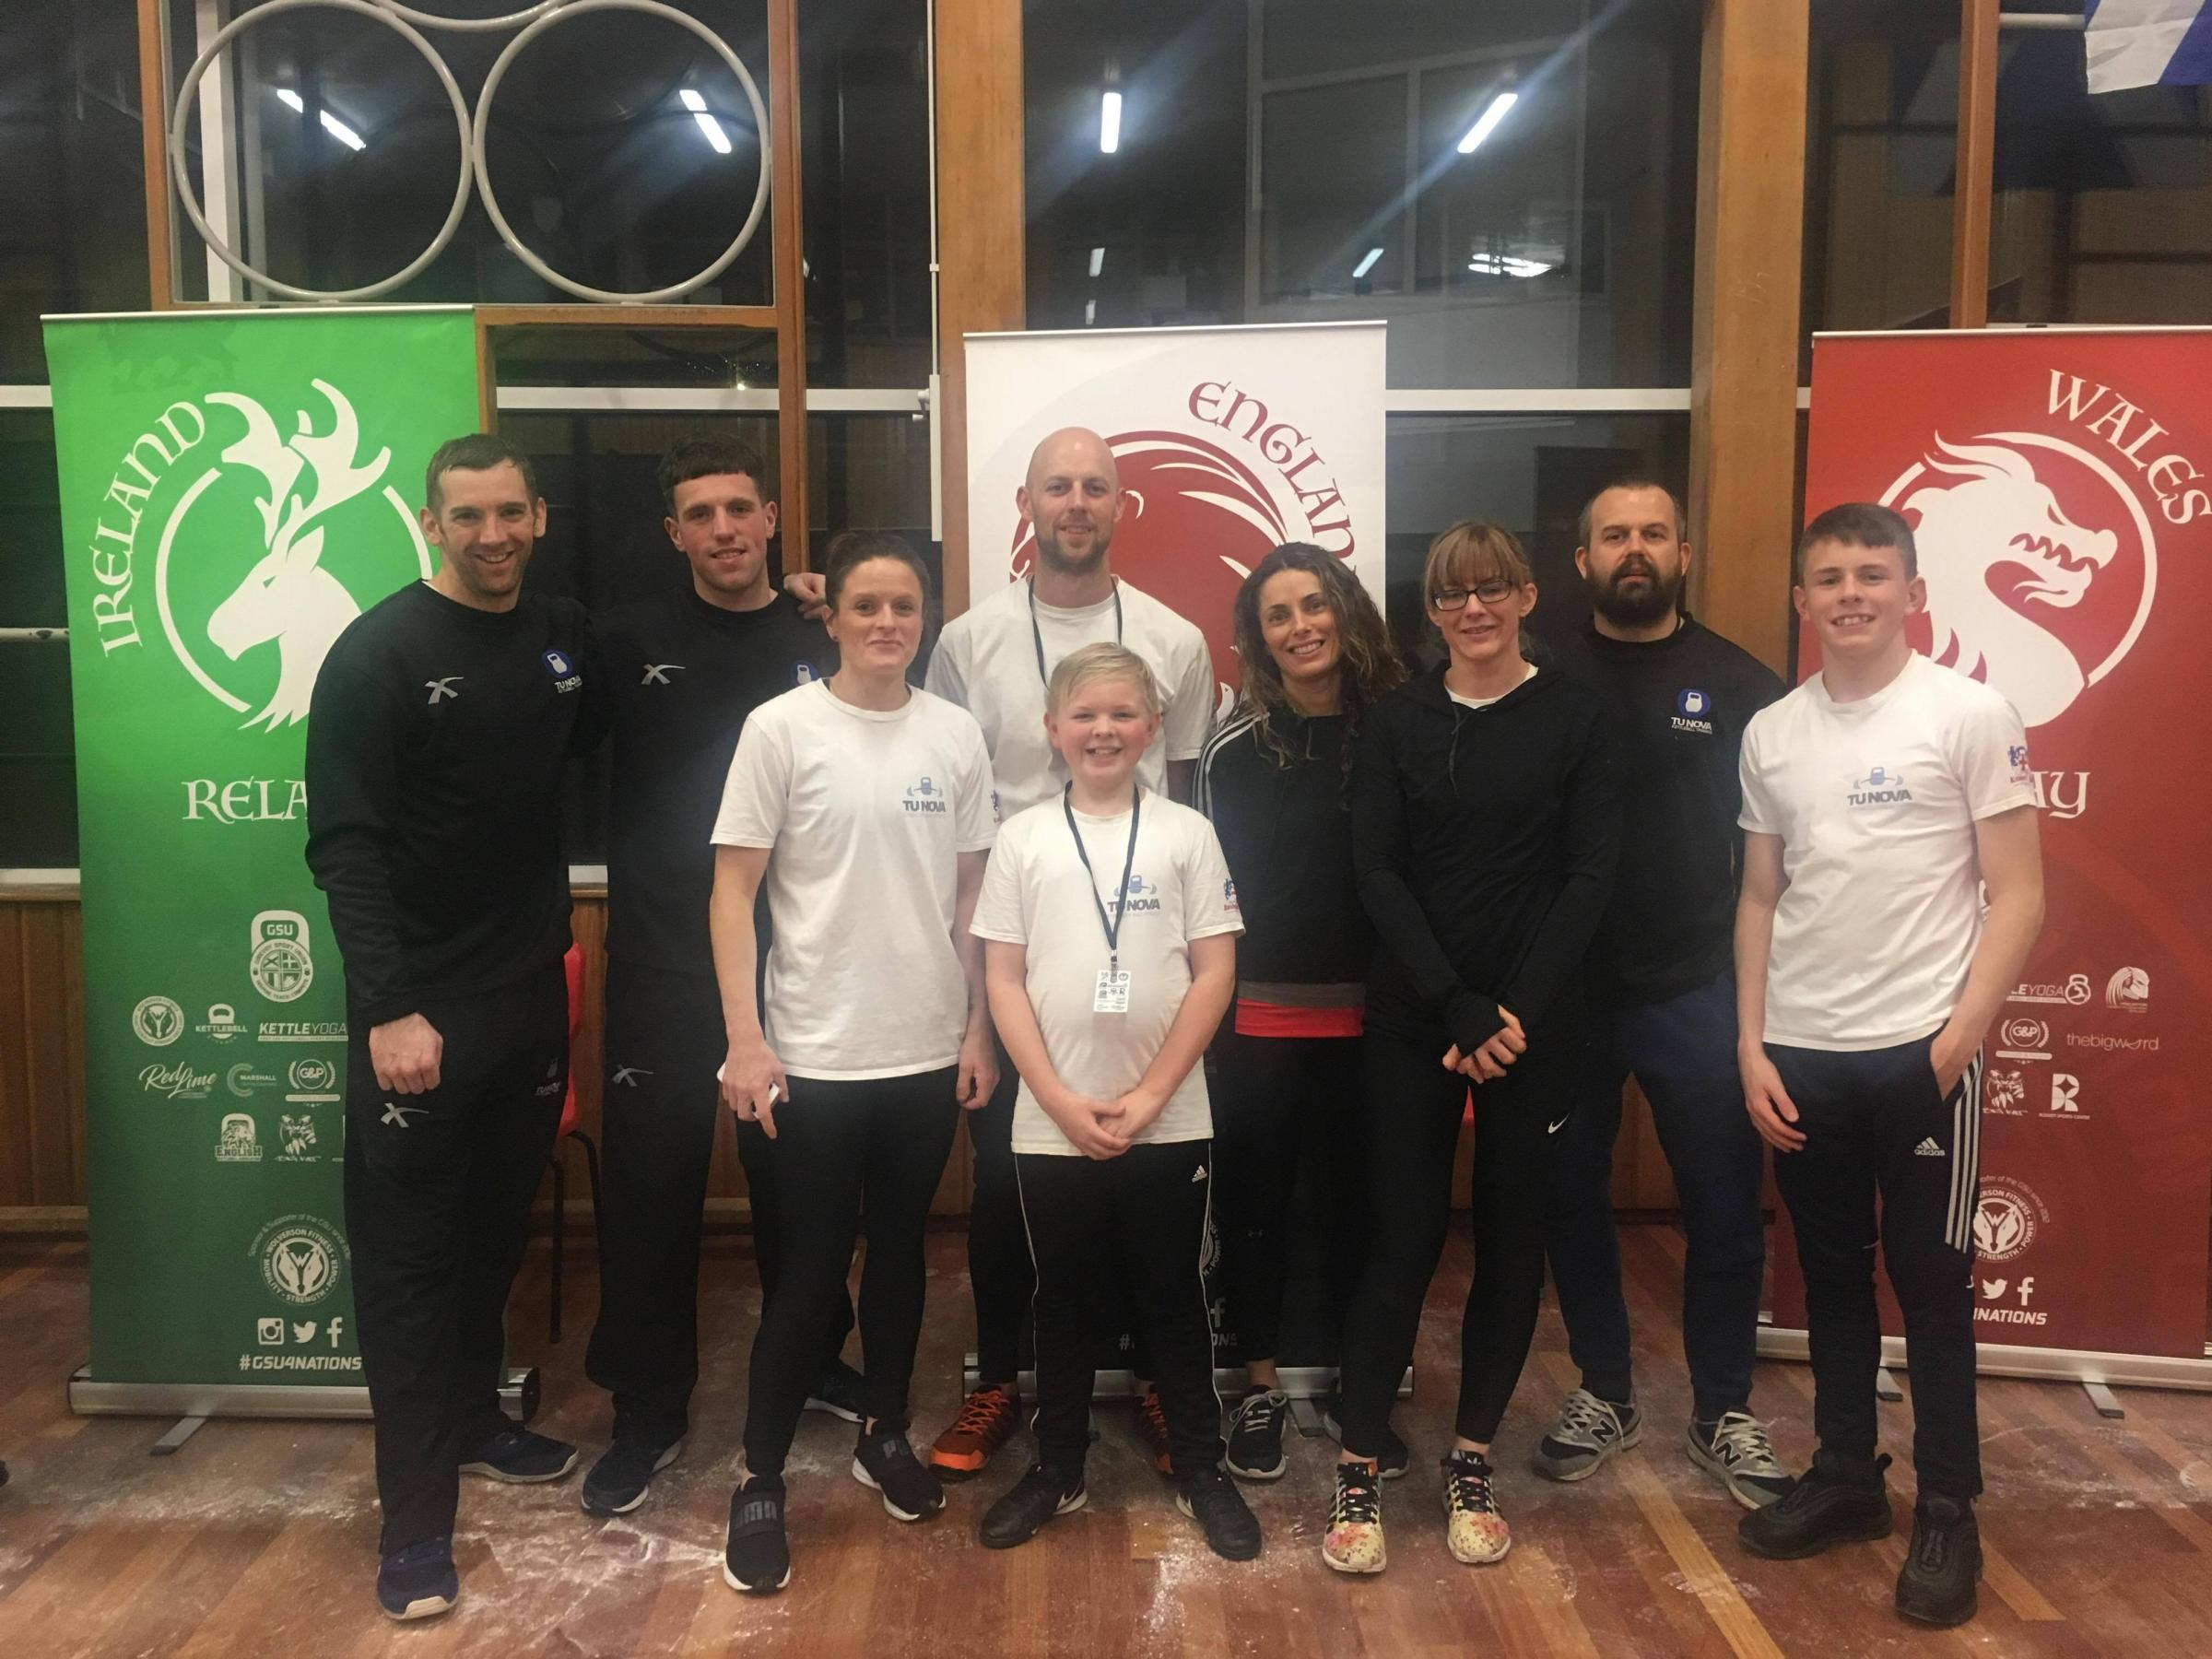 SPORTING SUCCESS: Members of the TU NOVA Strength and Fitness kettlebell team